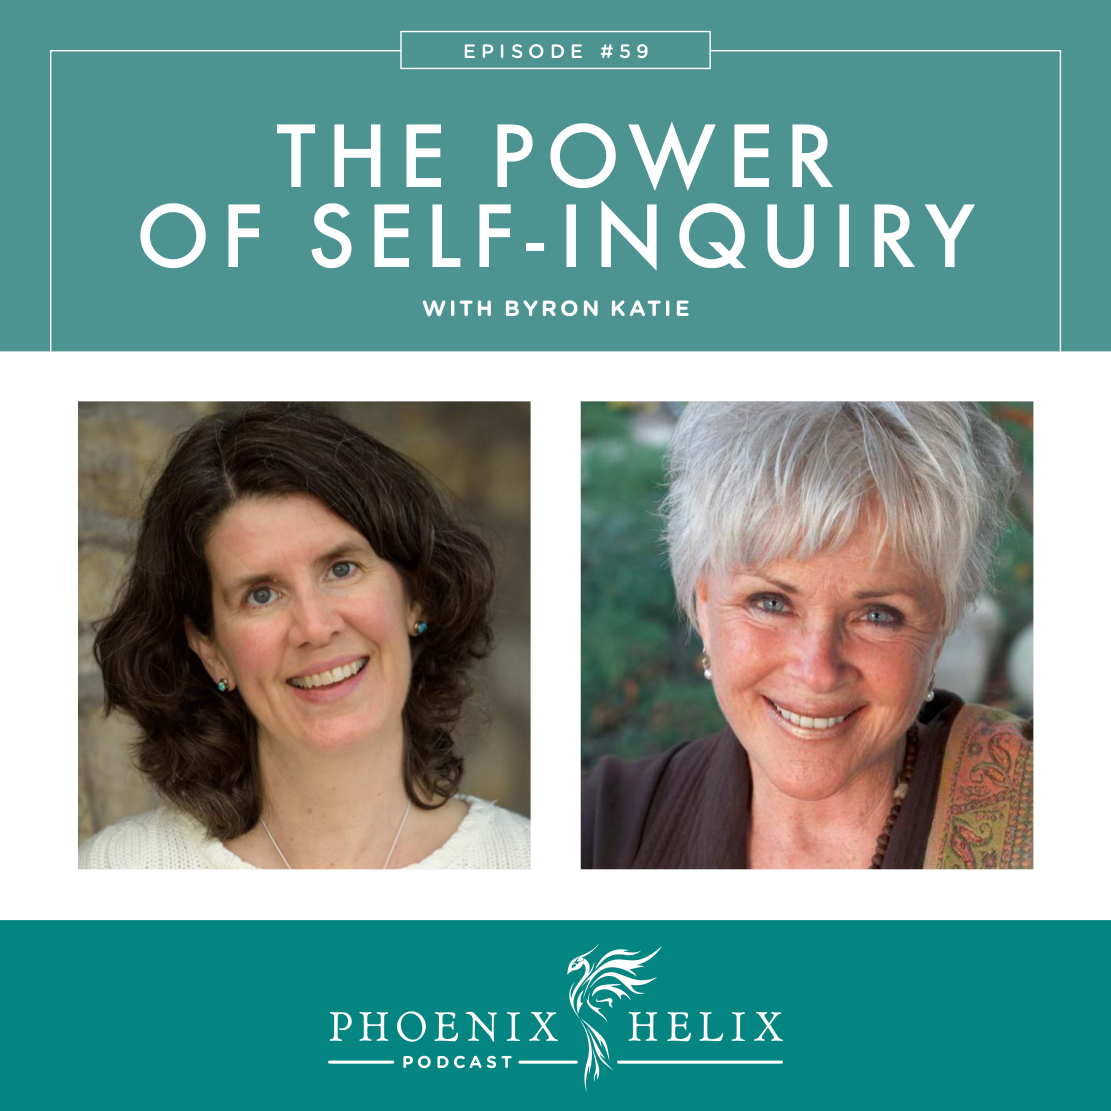 The Power of Self-Inquiry with Byron Katie | Phoenix Helix Podcast